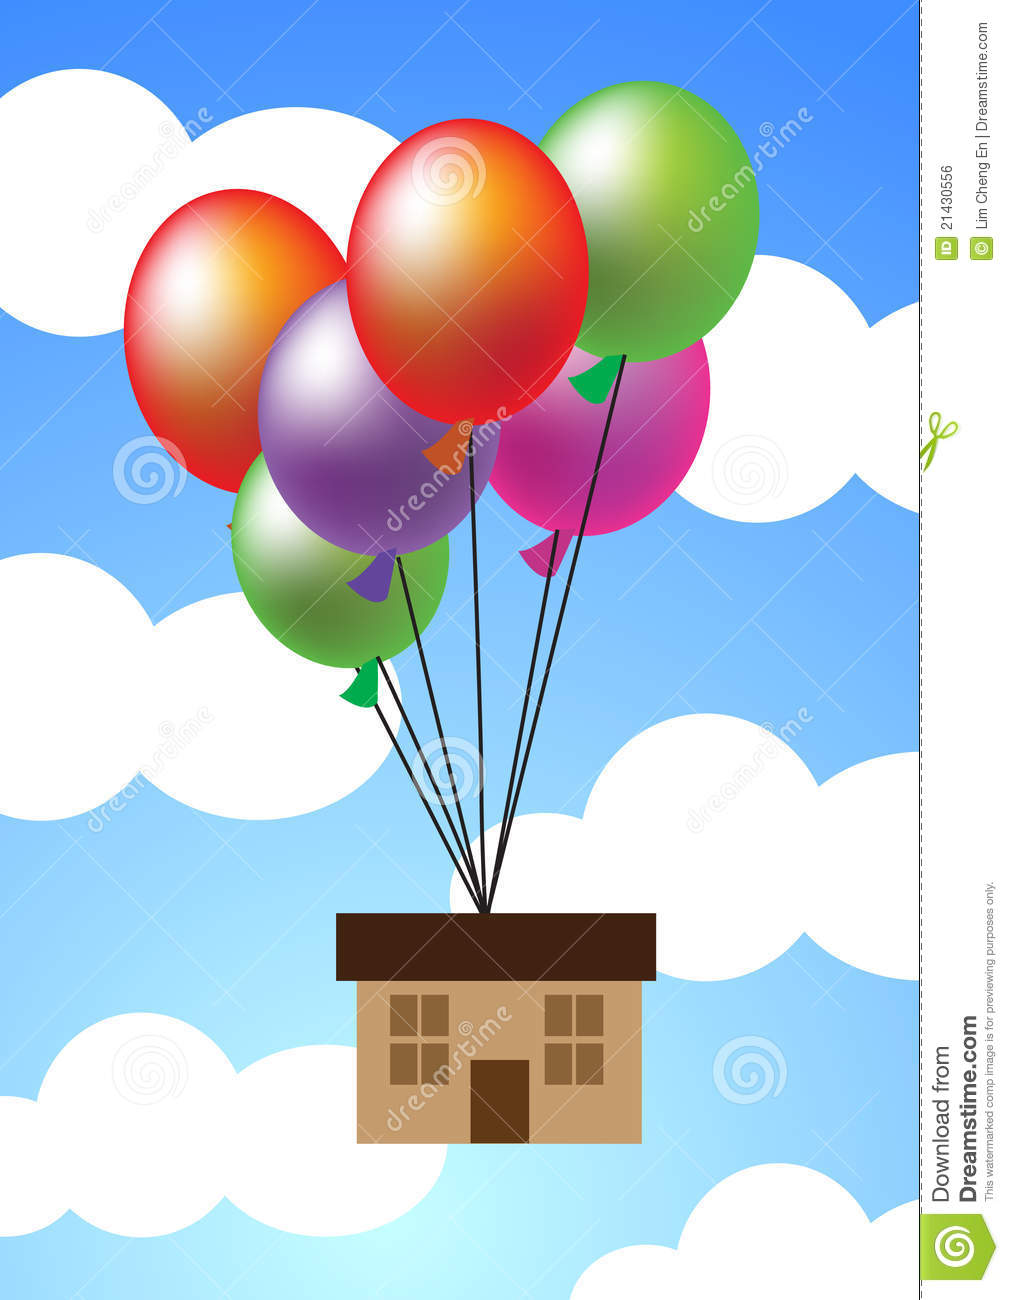 House hanging up with balloons royalty free stock image for Housse ballon yoga